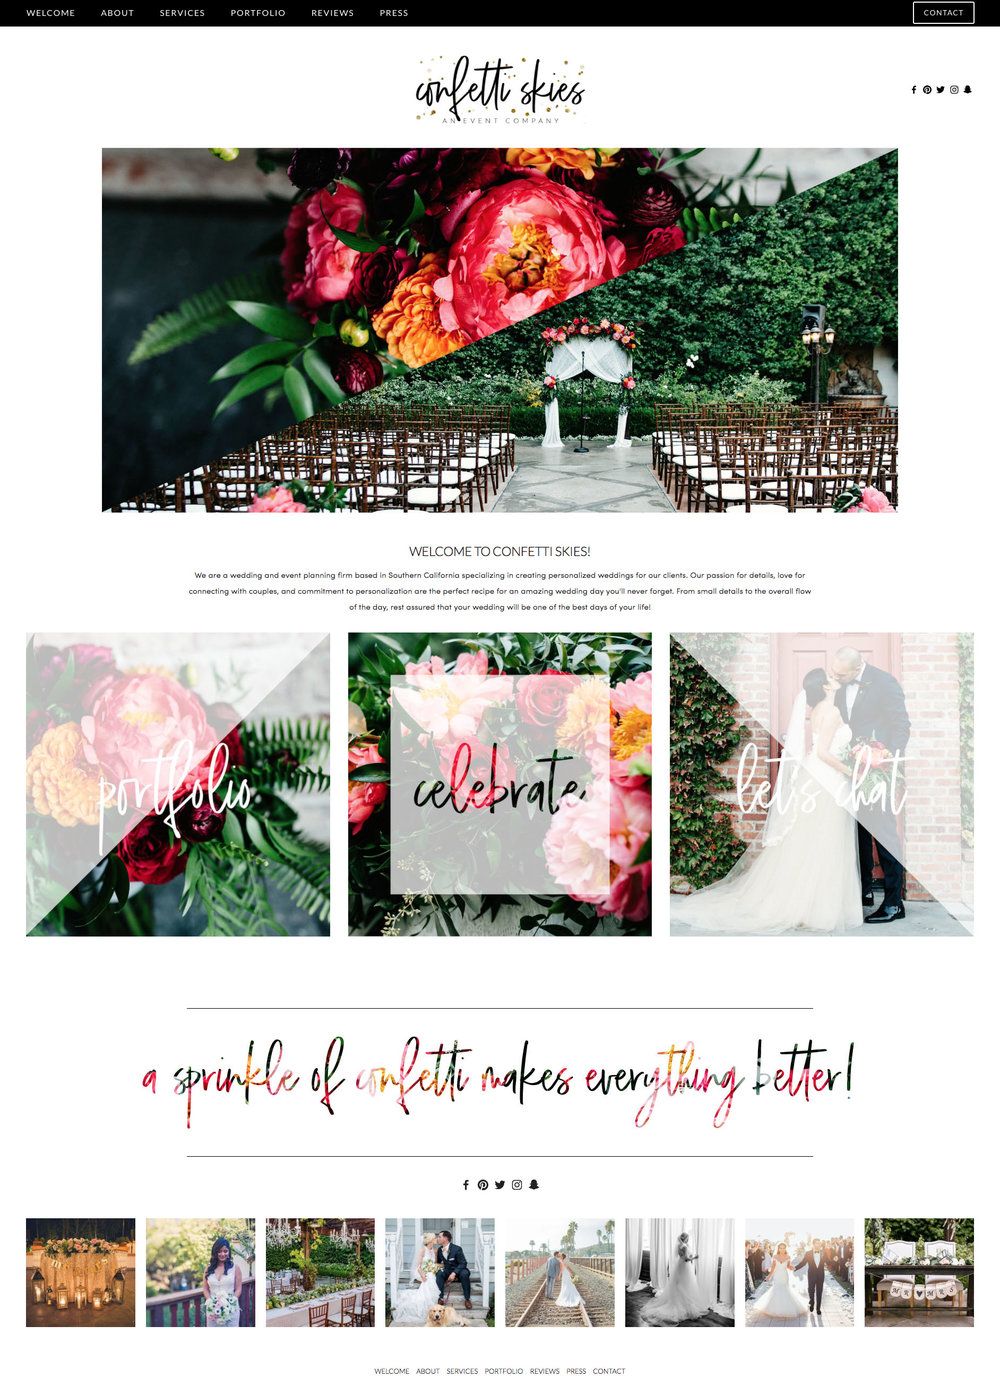 Website Design for Confetti Skies | The Editor's Touch